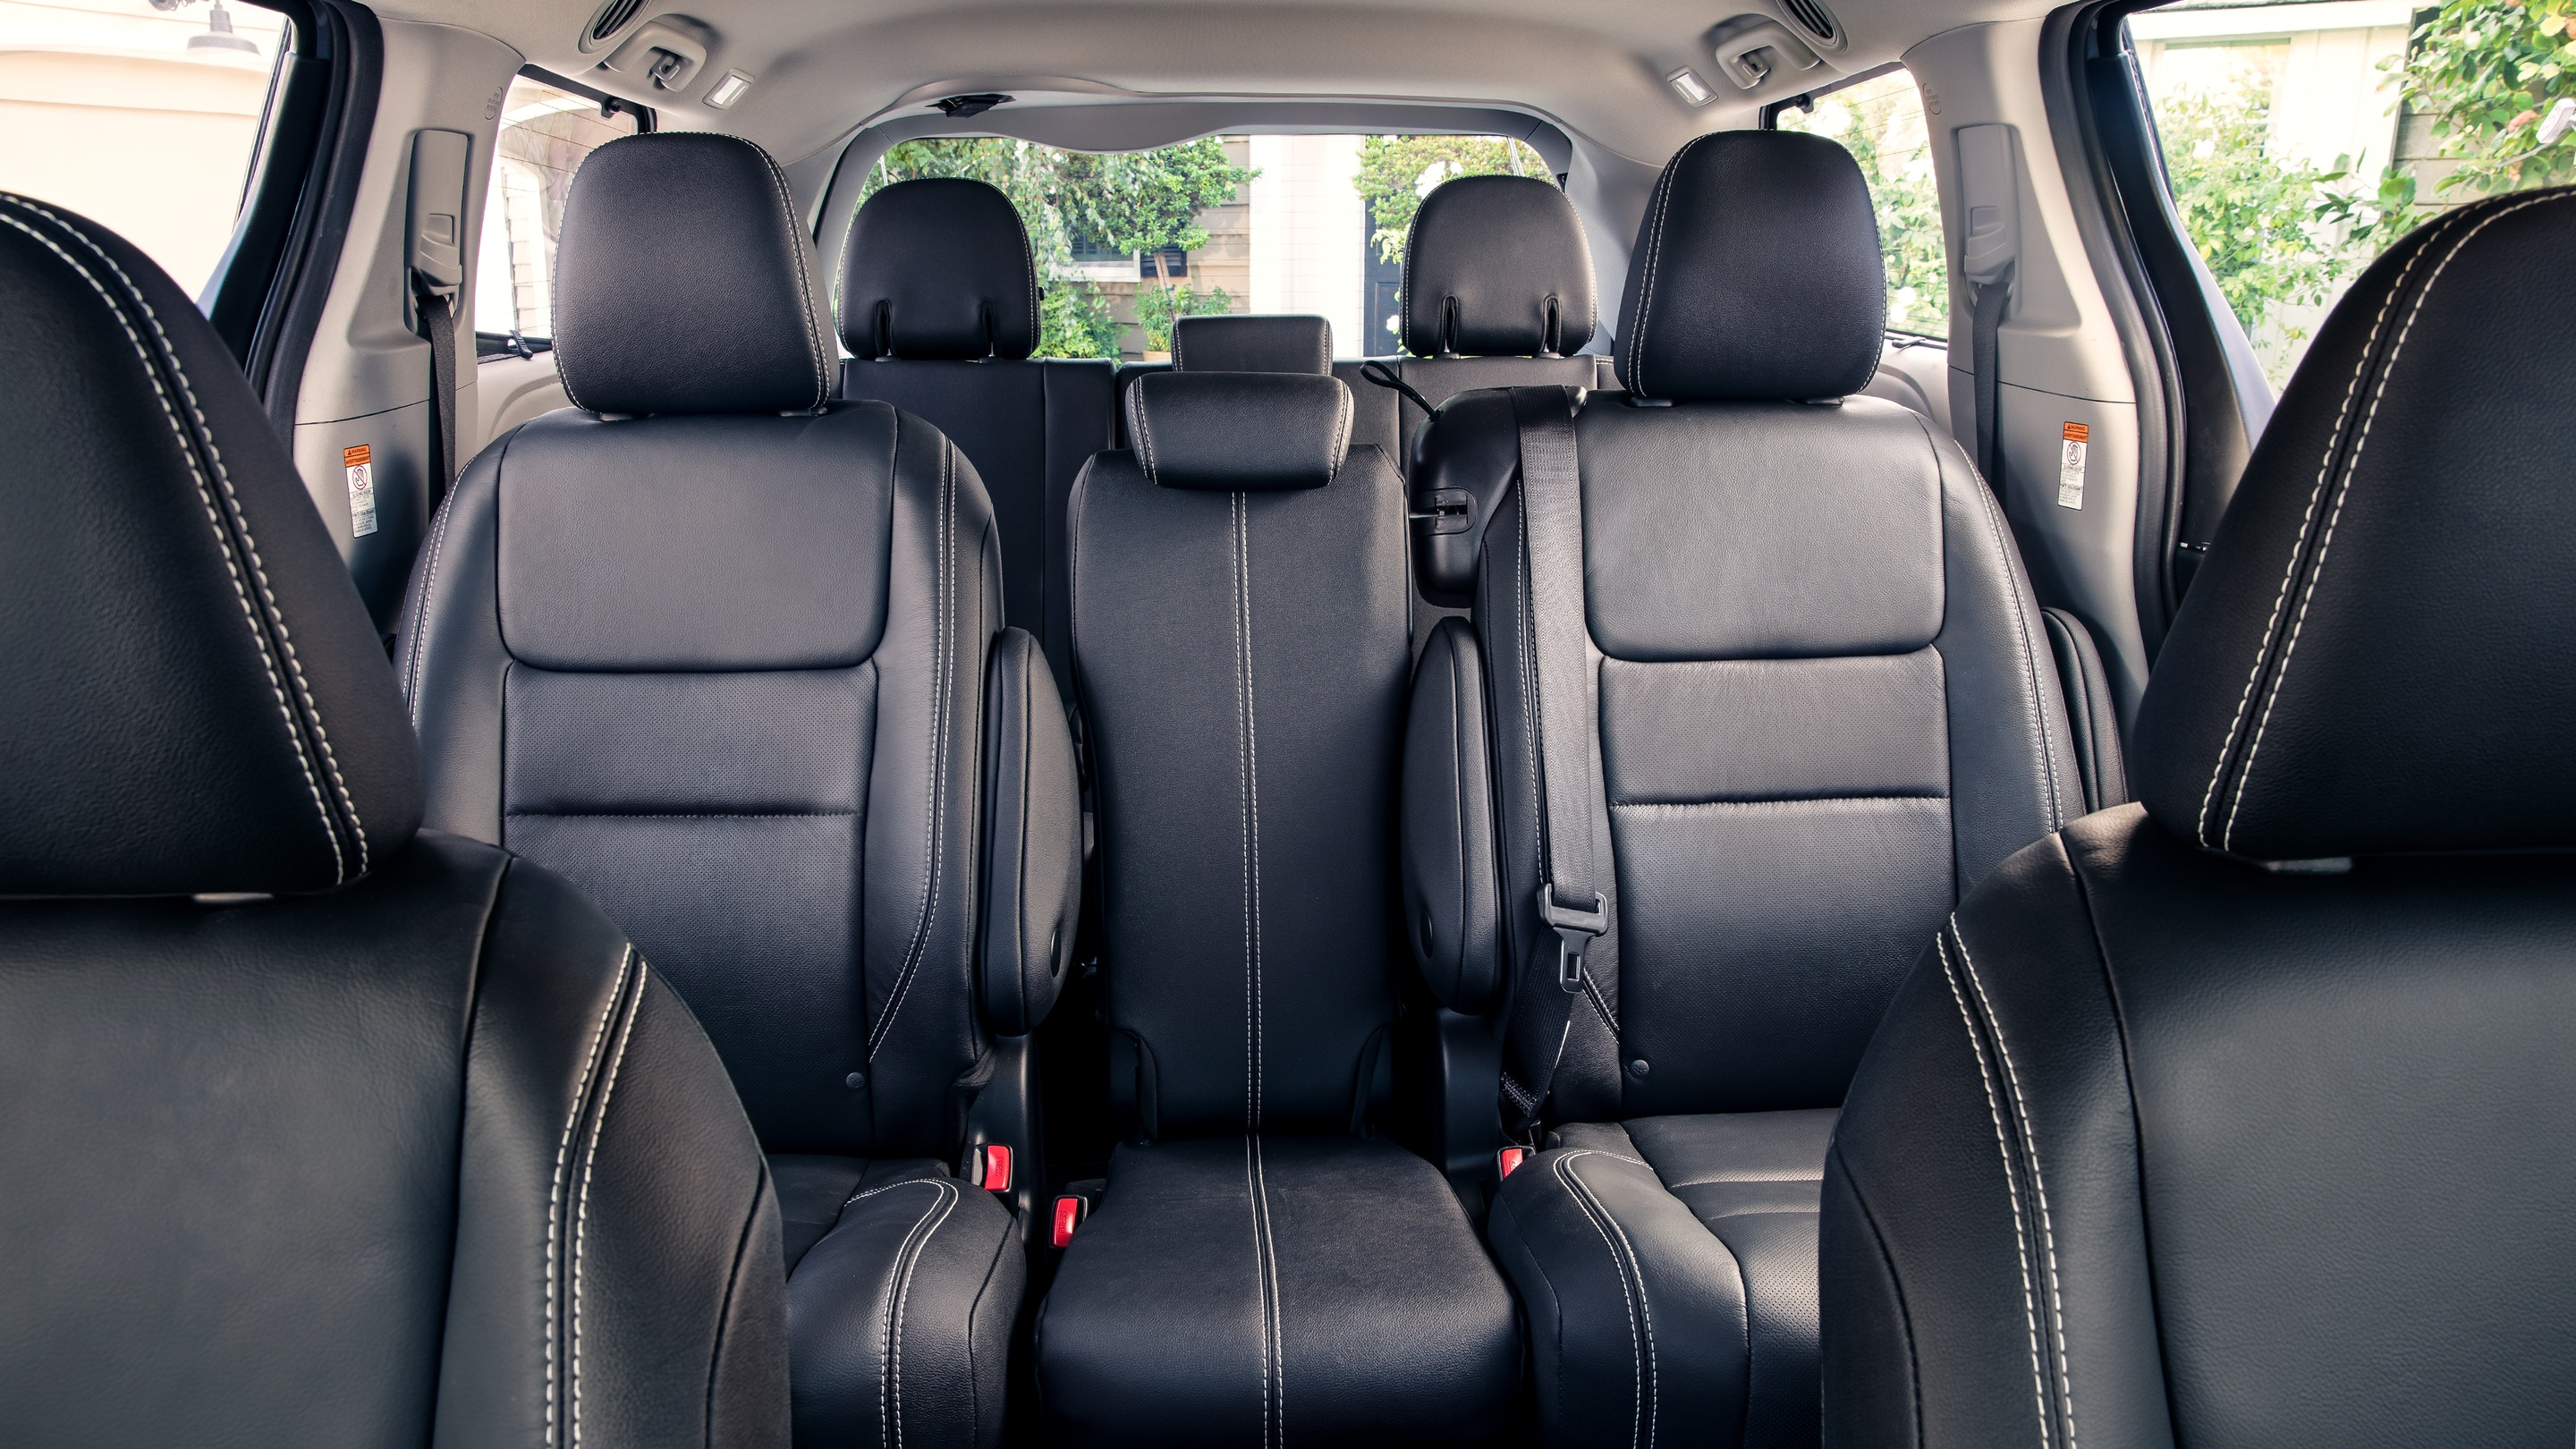 2020 Toyota Sienna Seating